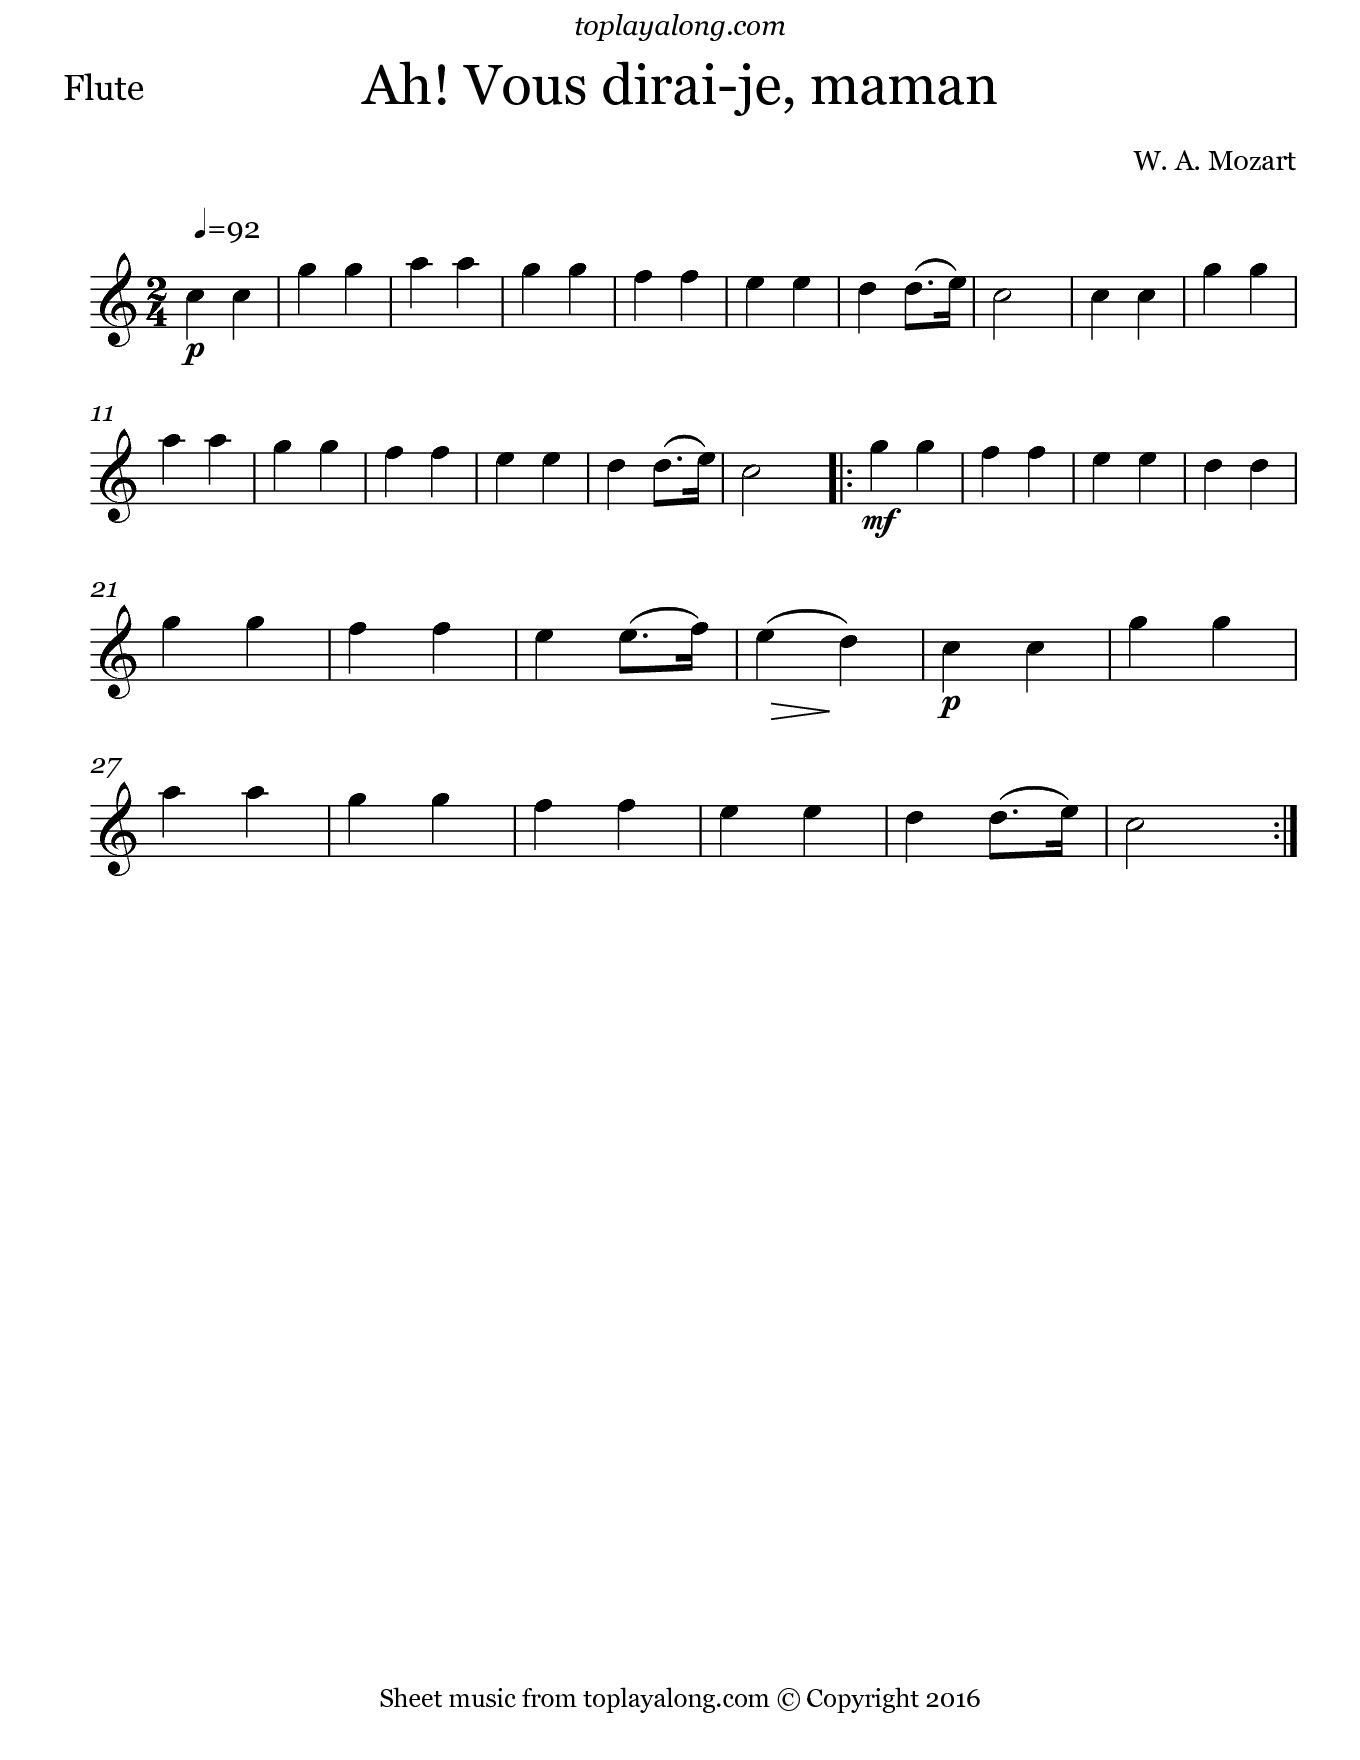 Ah! Vous dirai-je, maman by Mozart. Sheet music for Flute, page 1.